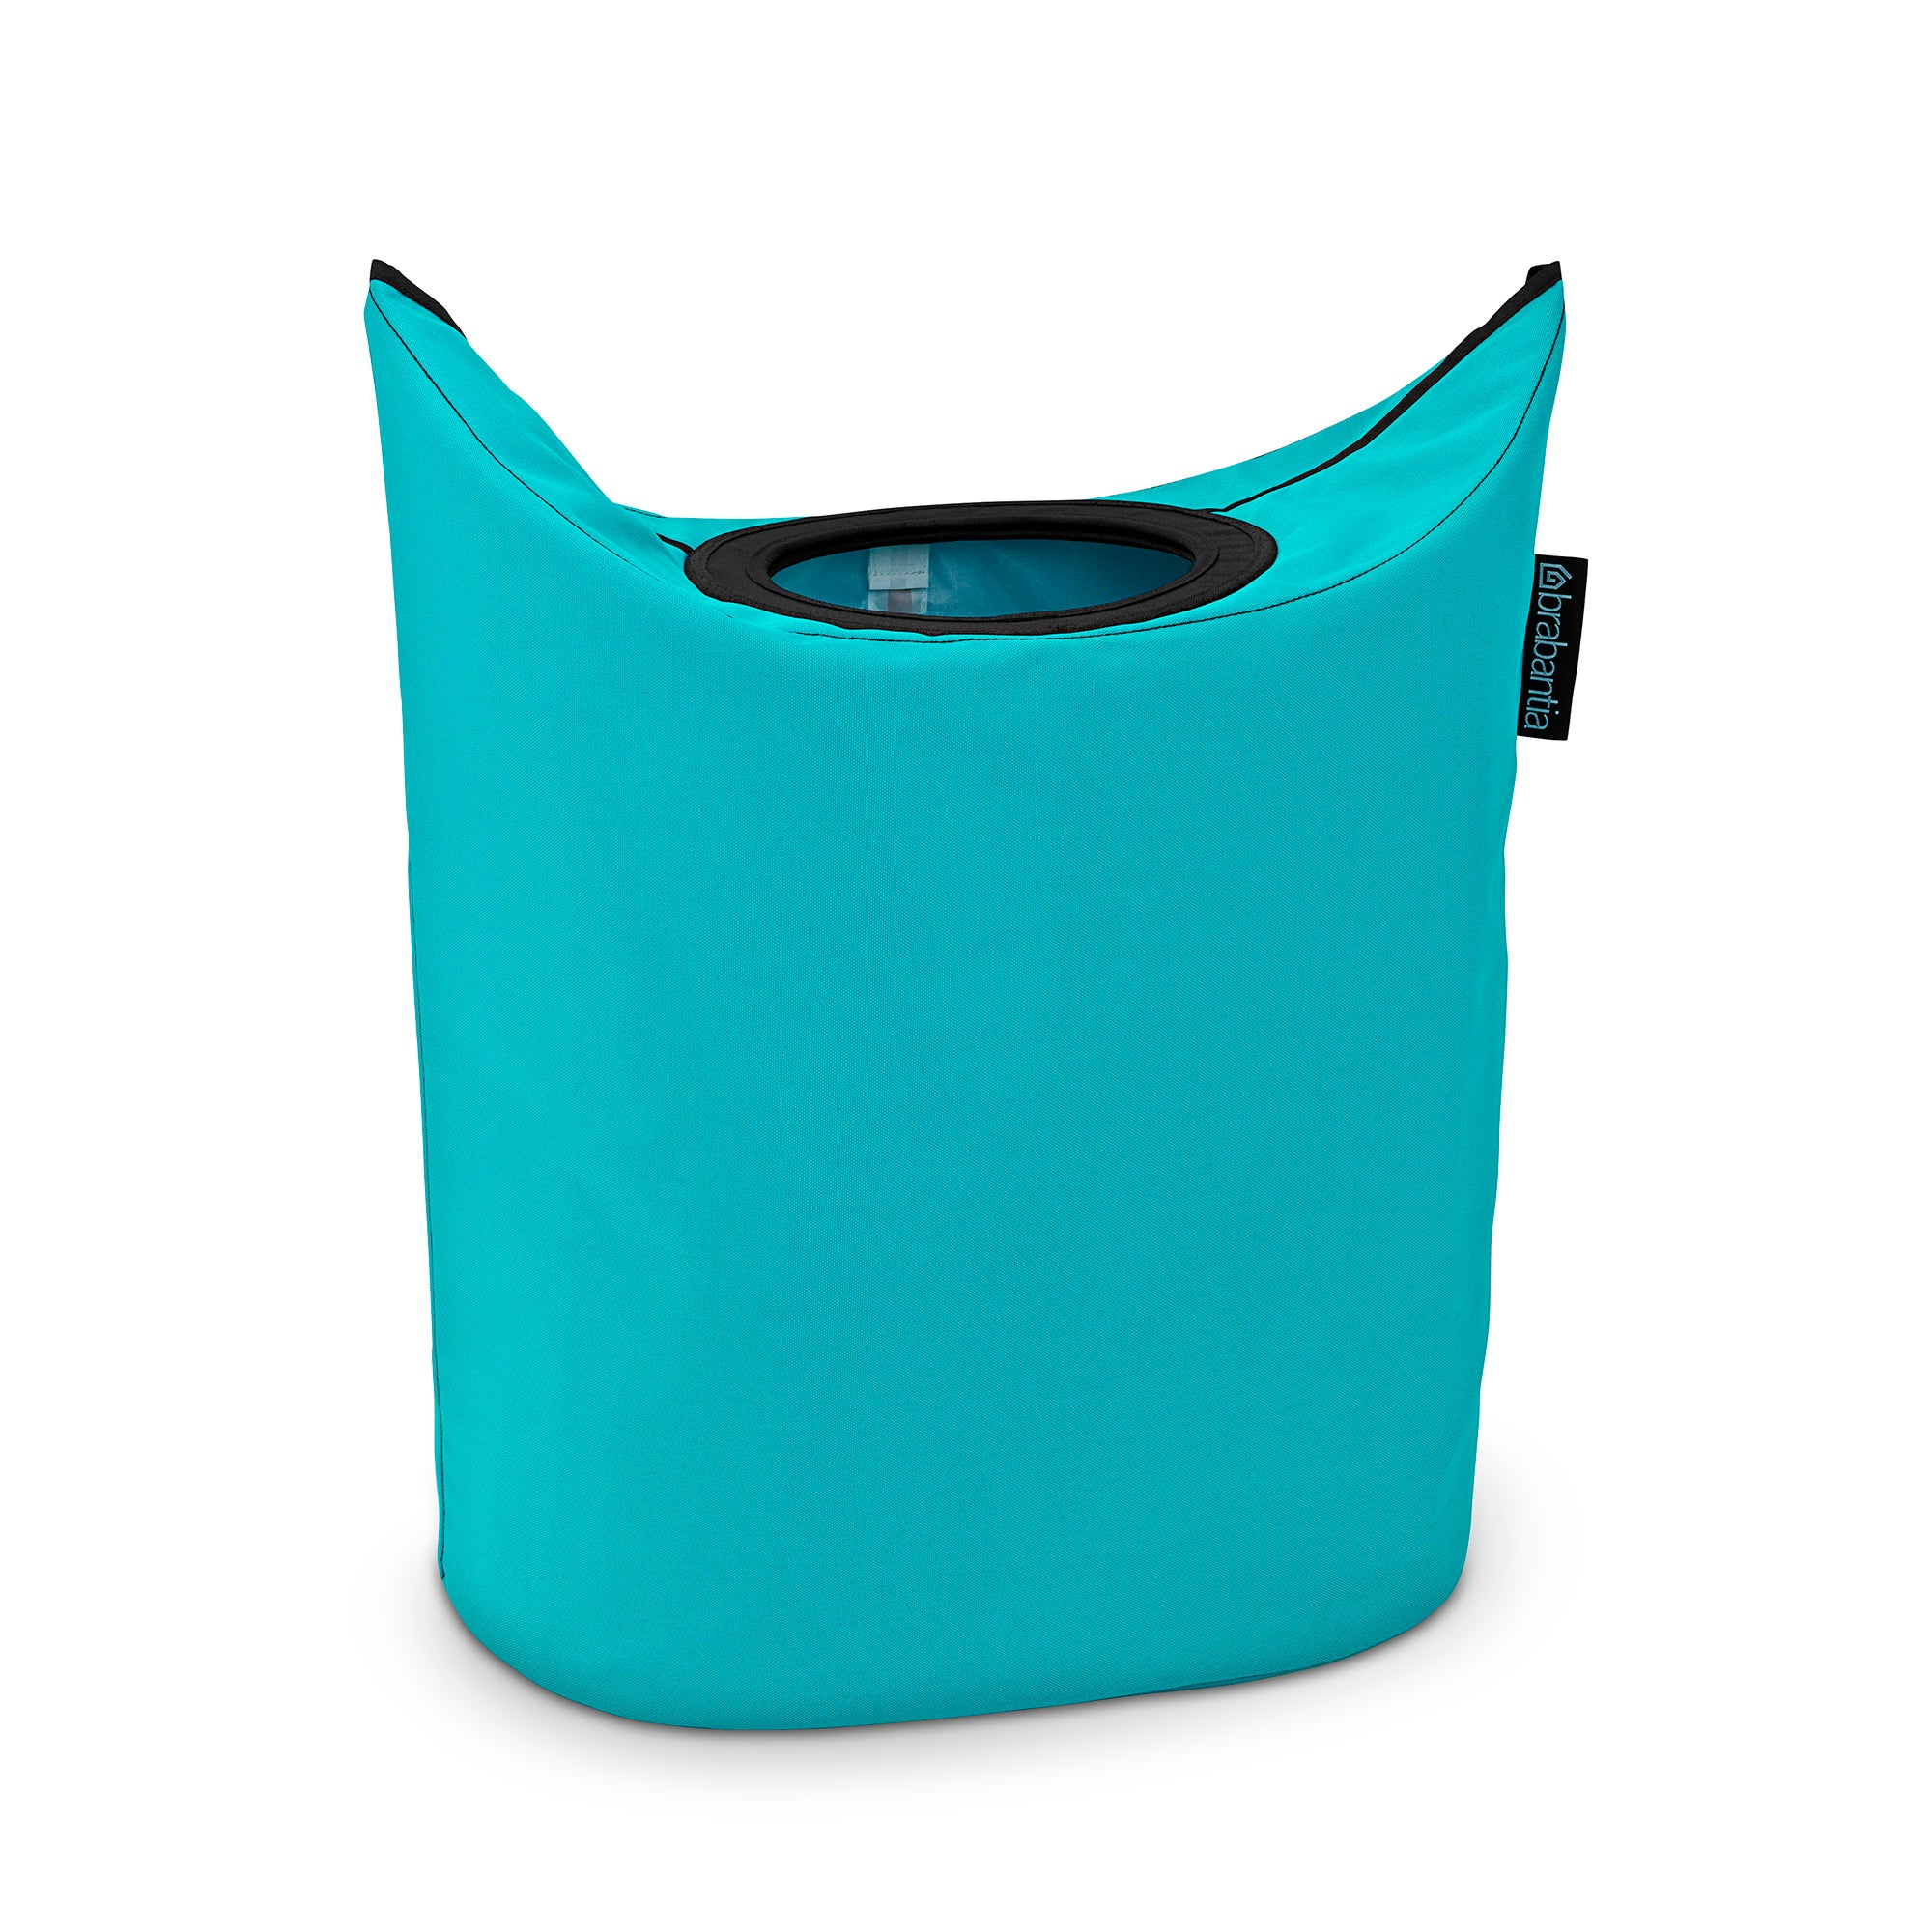 Brabantia Blue 50 Litre Laundry Bag